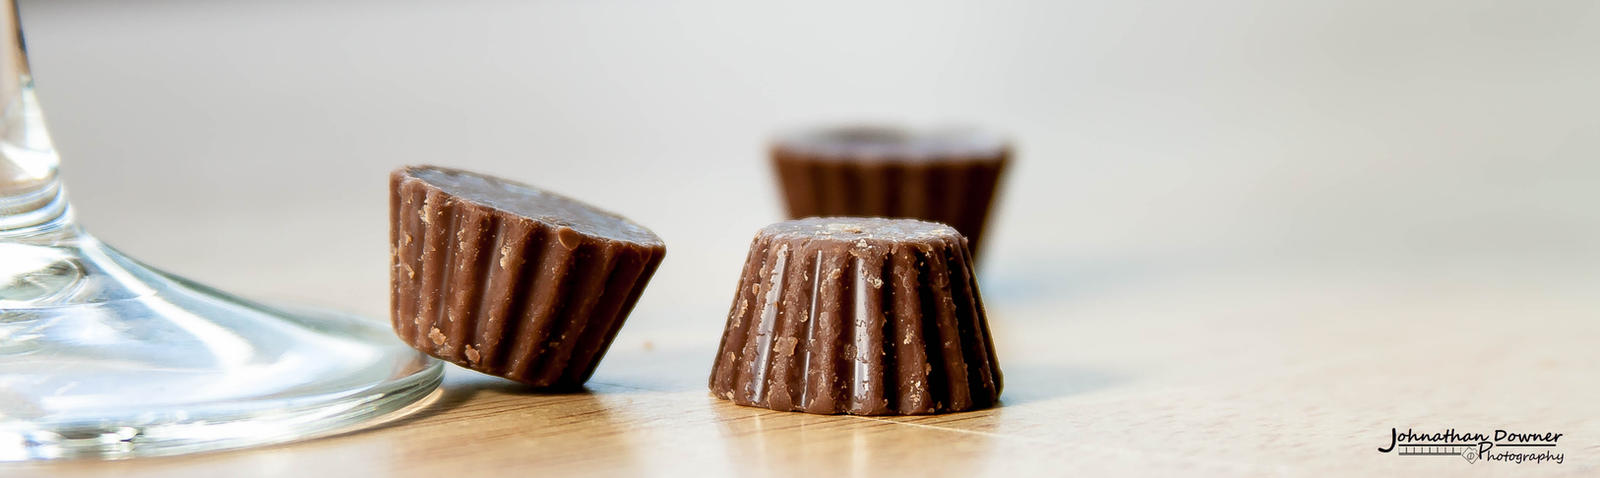 Reese's Minis by trinity343